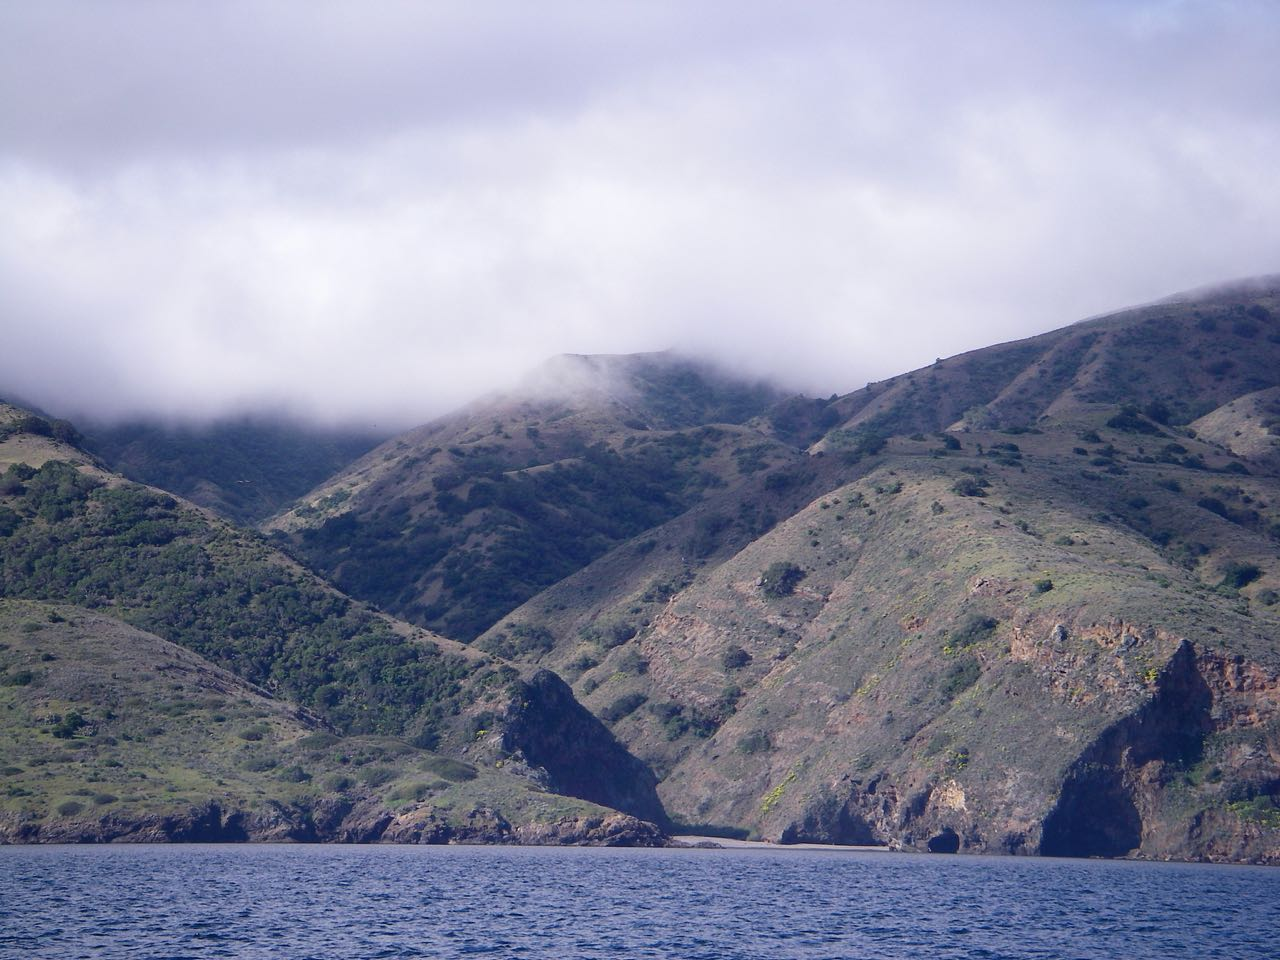 Sail to Cueva Valdez anchorage on Santa Cruz Island with Capt. Dan Ryder and Sail Channel Islands